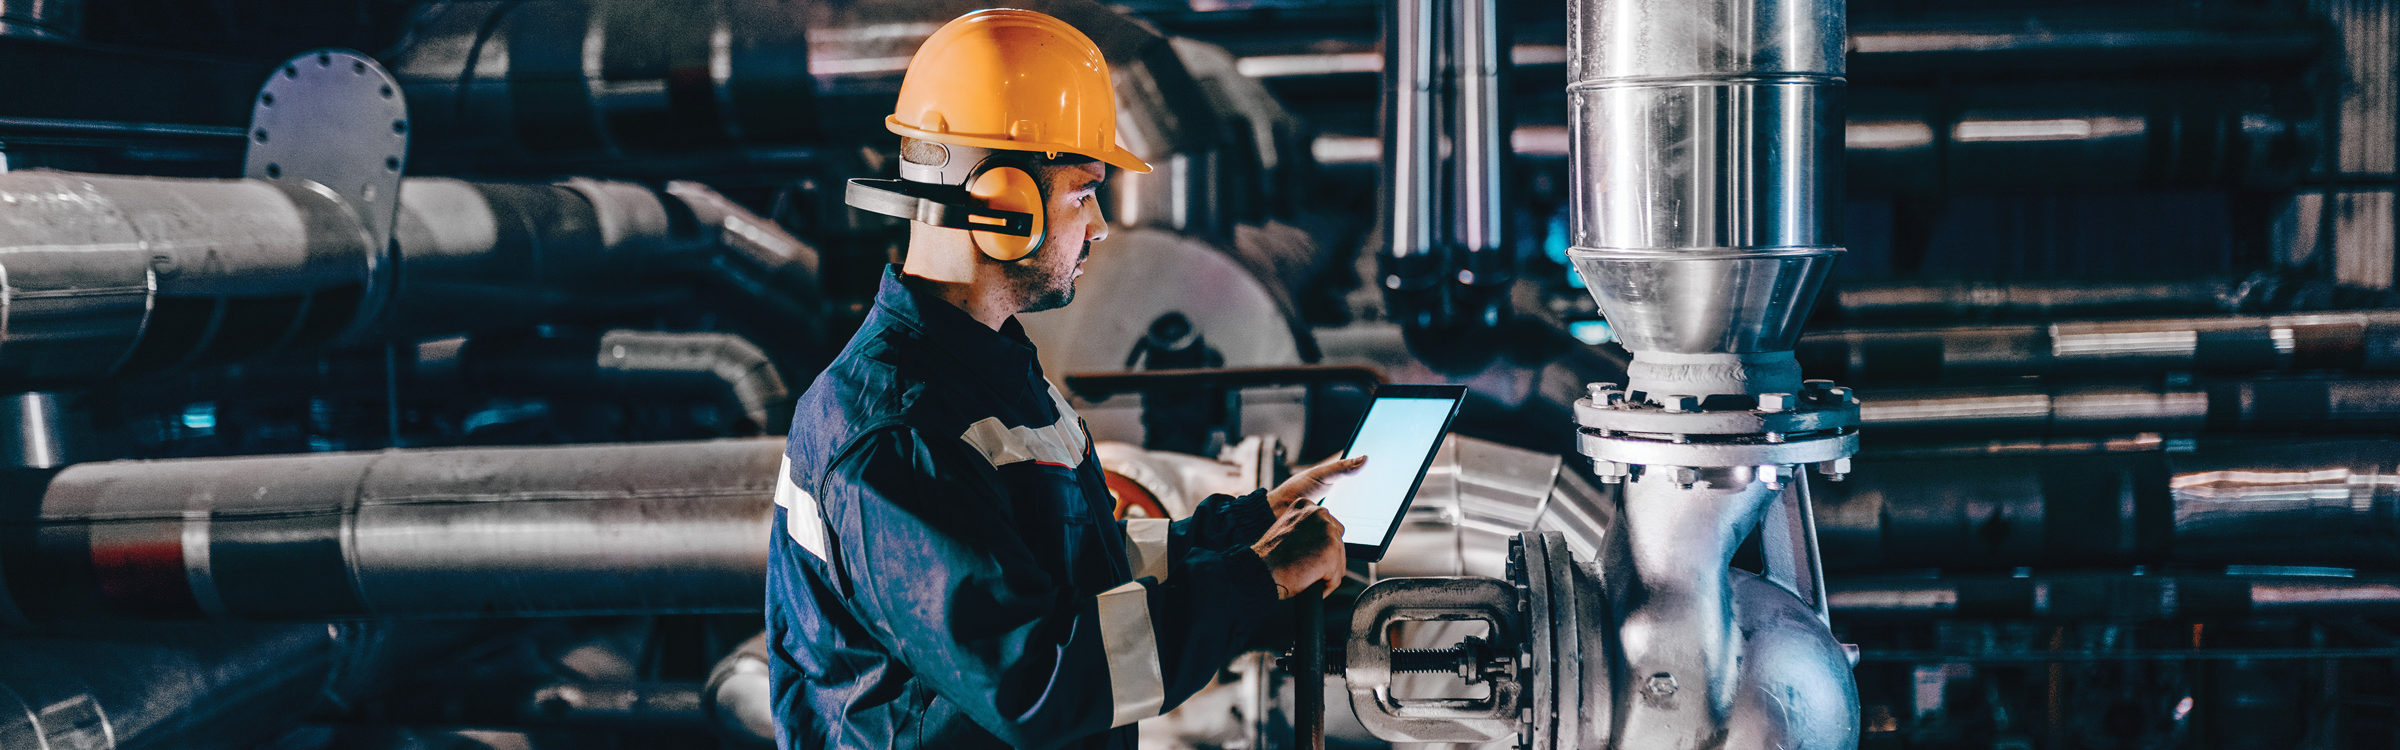 Mobile User Experience for Maintenance featured image